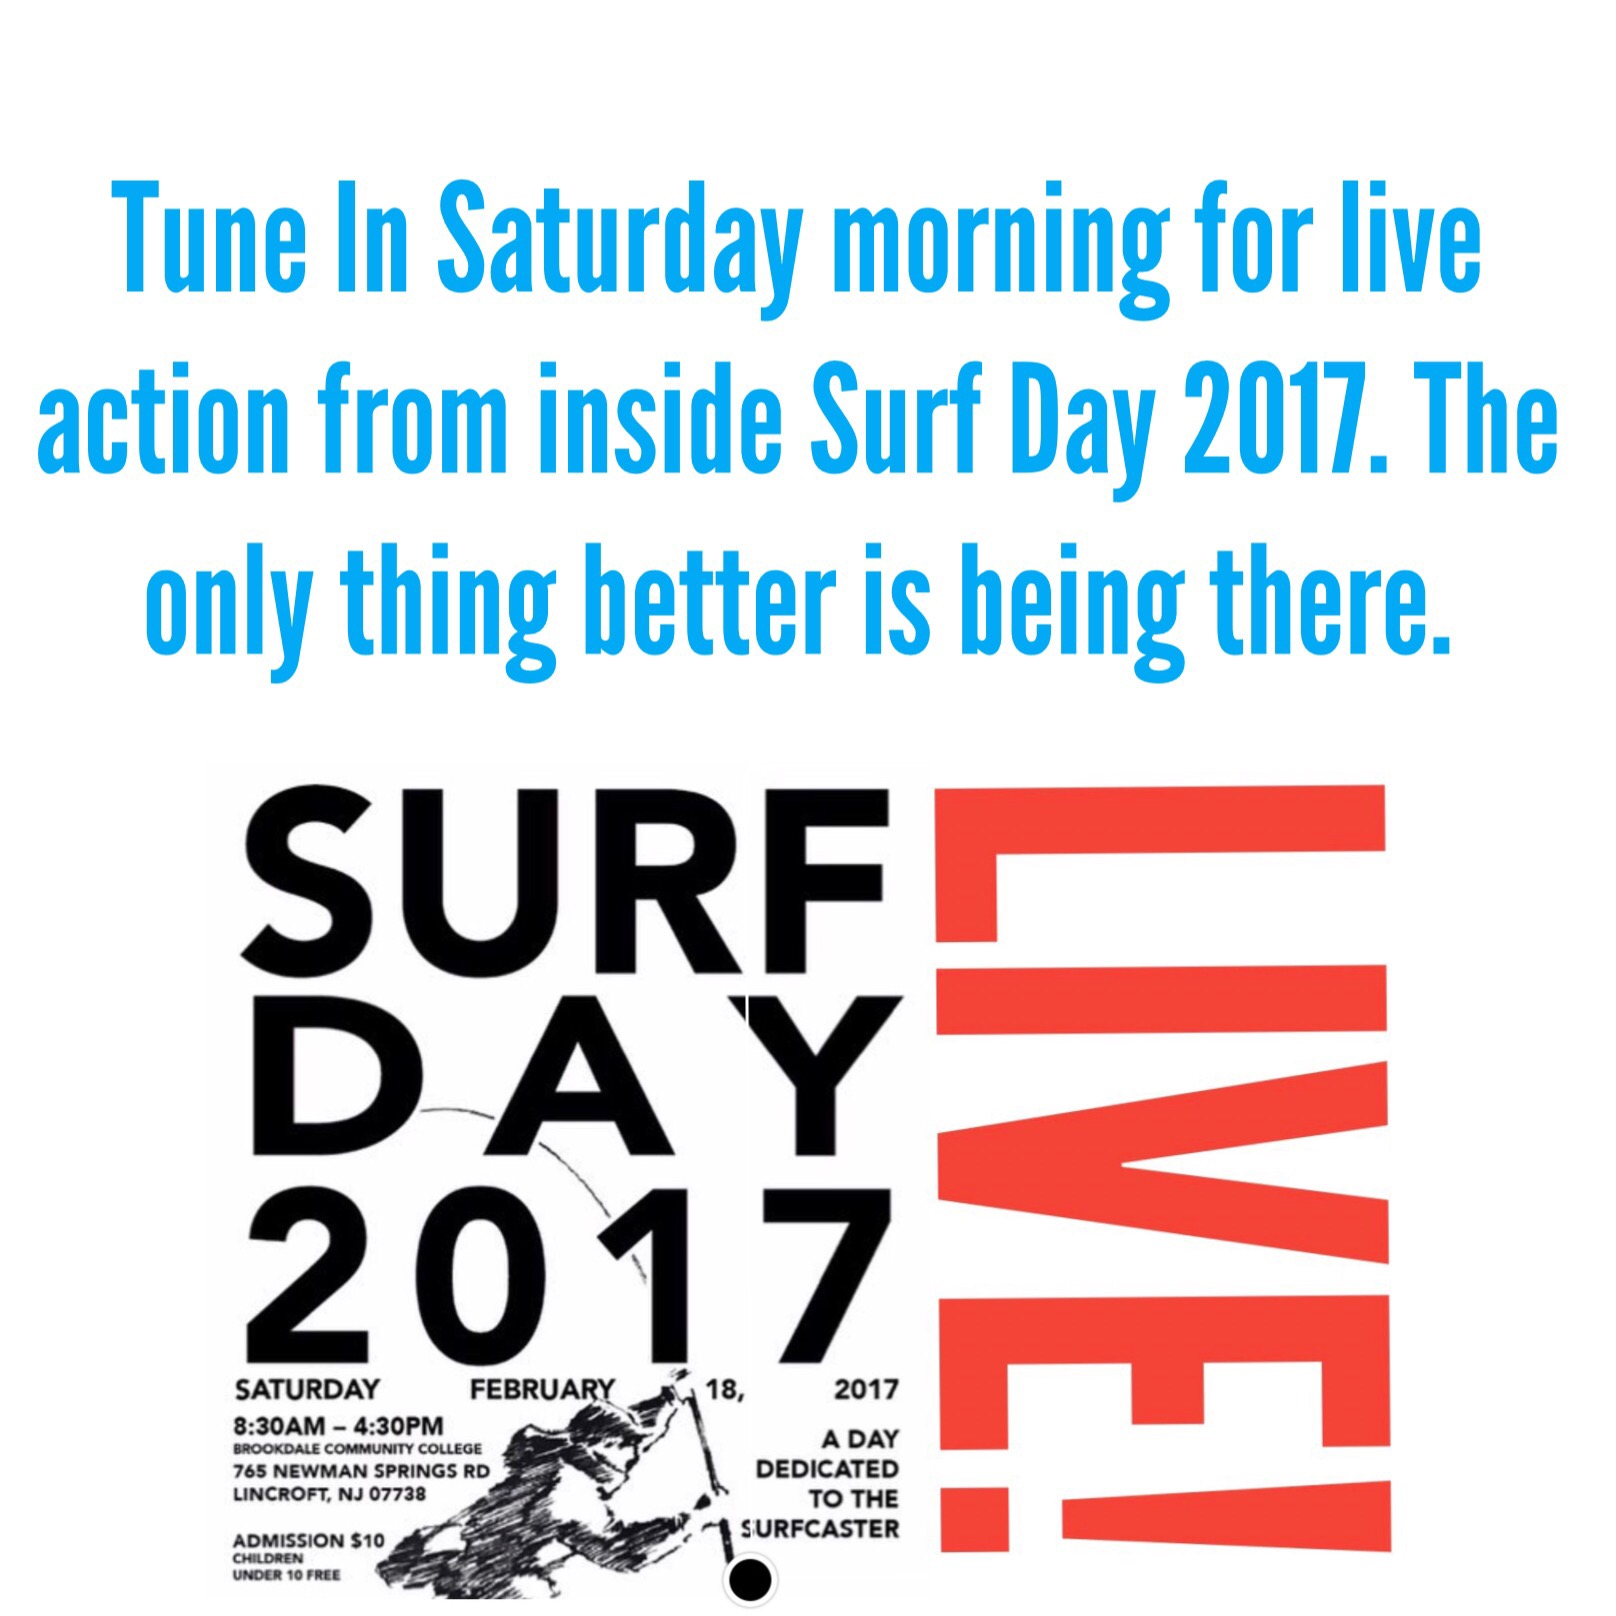 Surf day live lbi nj fishing report for Lbi fishing charters